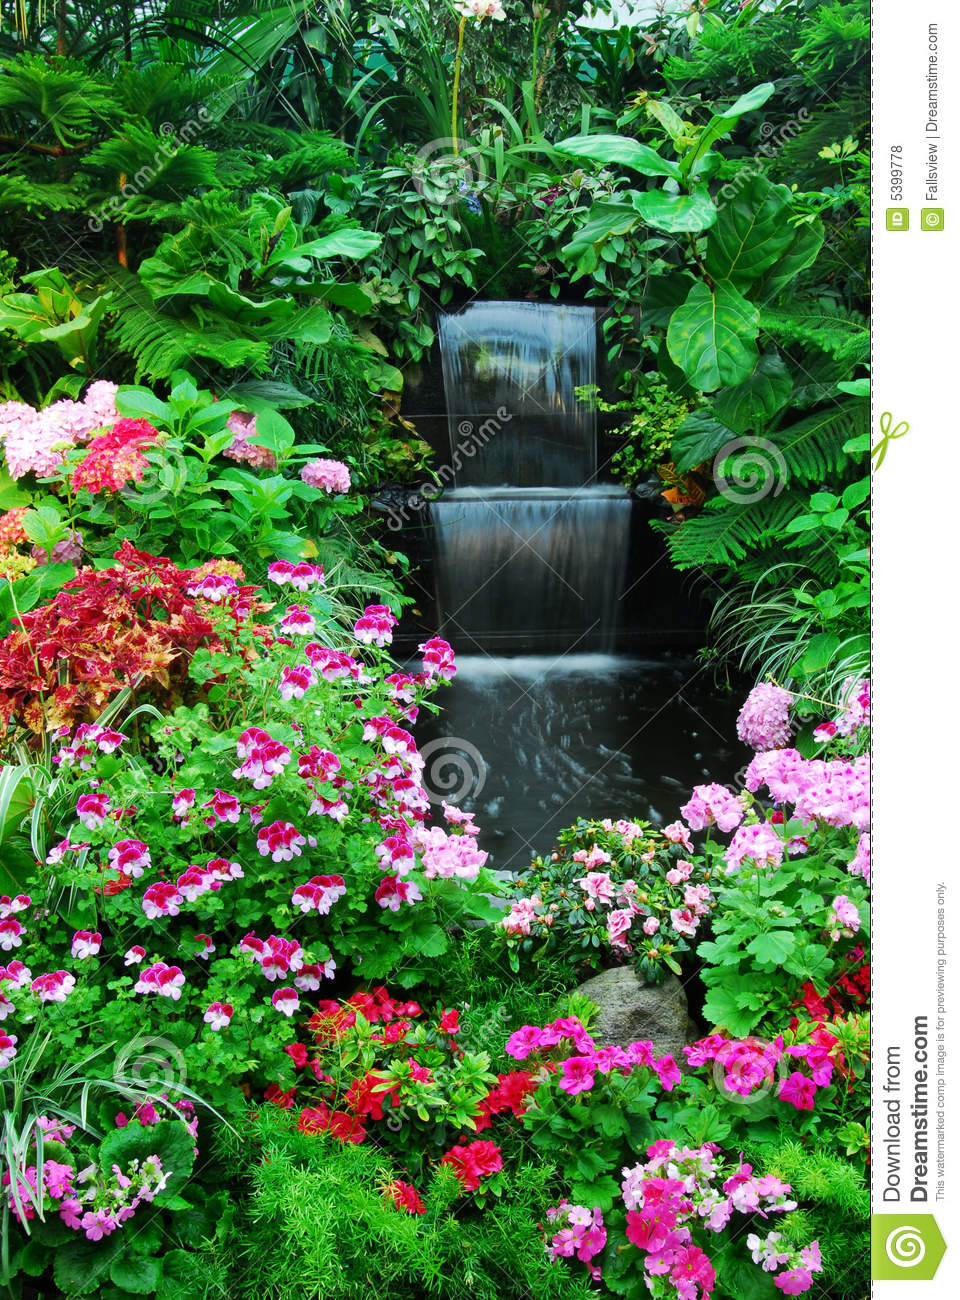 blumen wasserfall im garten stockfoto bild von. Black Bedroom Furniture Sets. Home Design Ideas